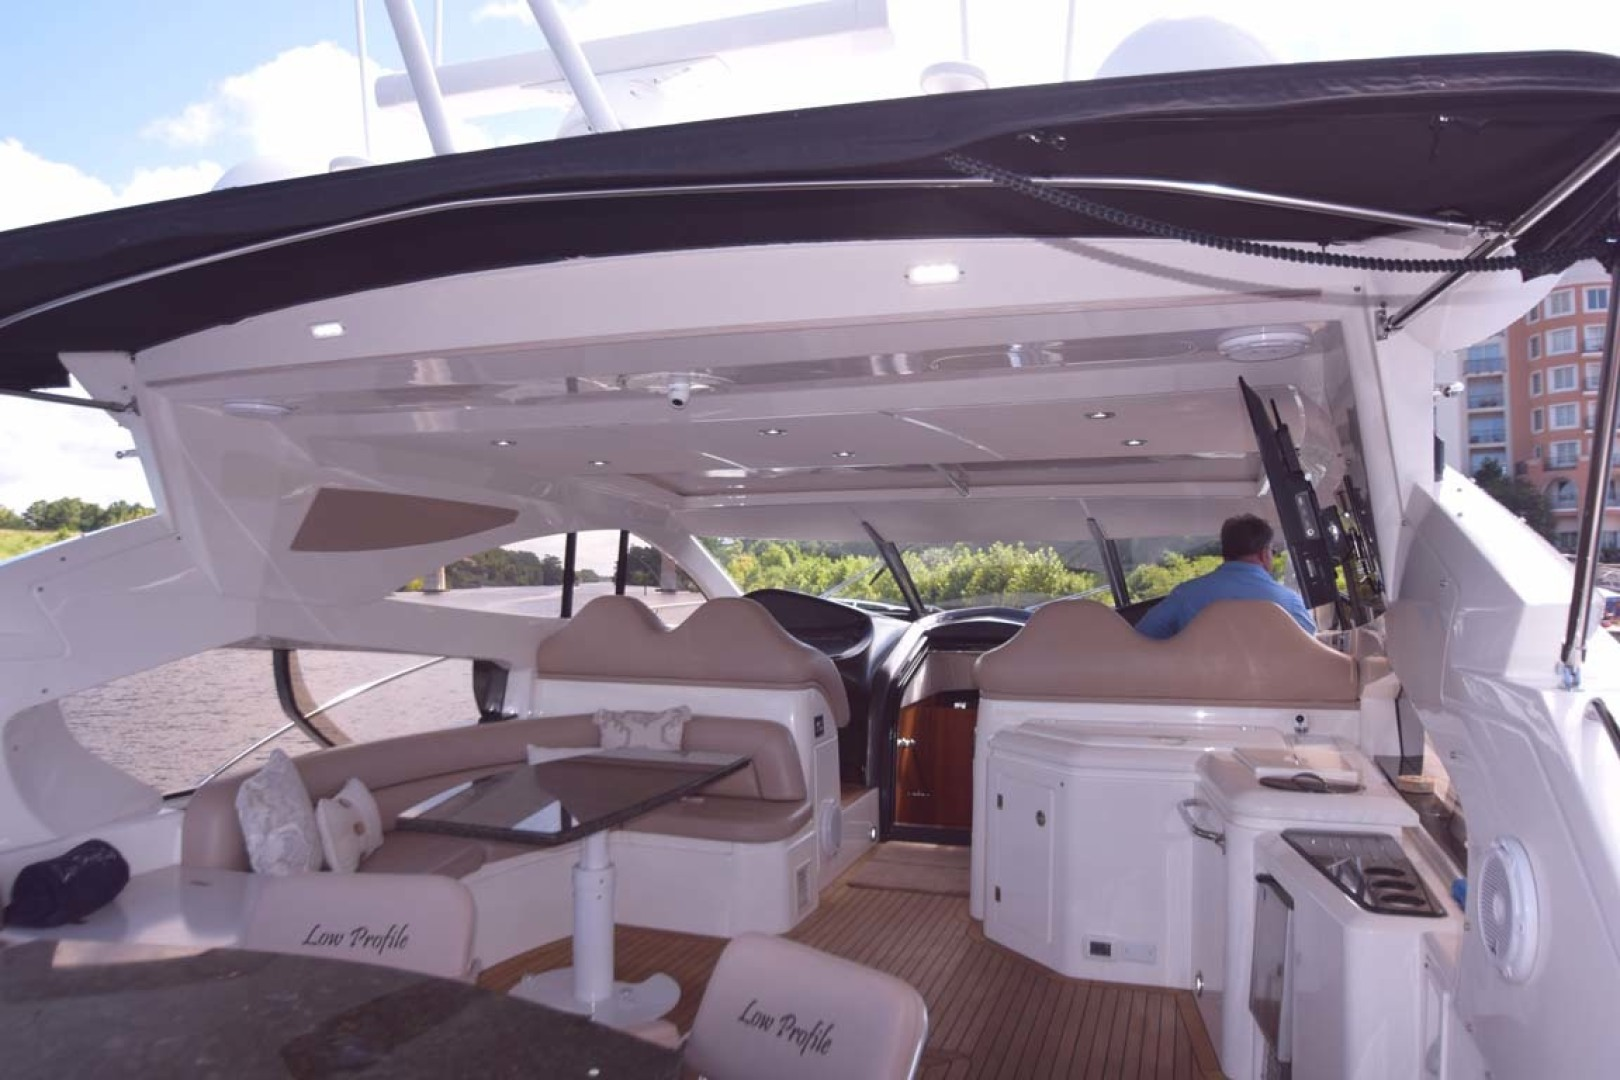 Sunseeker-Predator 2003-Low Profile PALM BEACH-Florida-United States-Aft Deck From Swim Platform-1576384 | Thumbnail